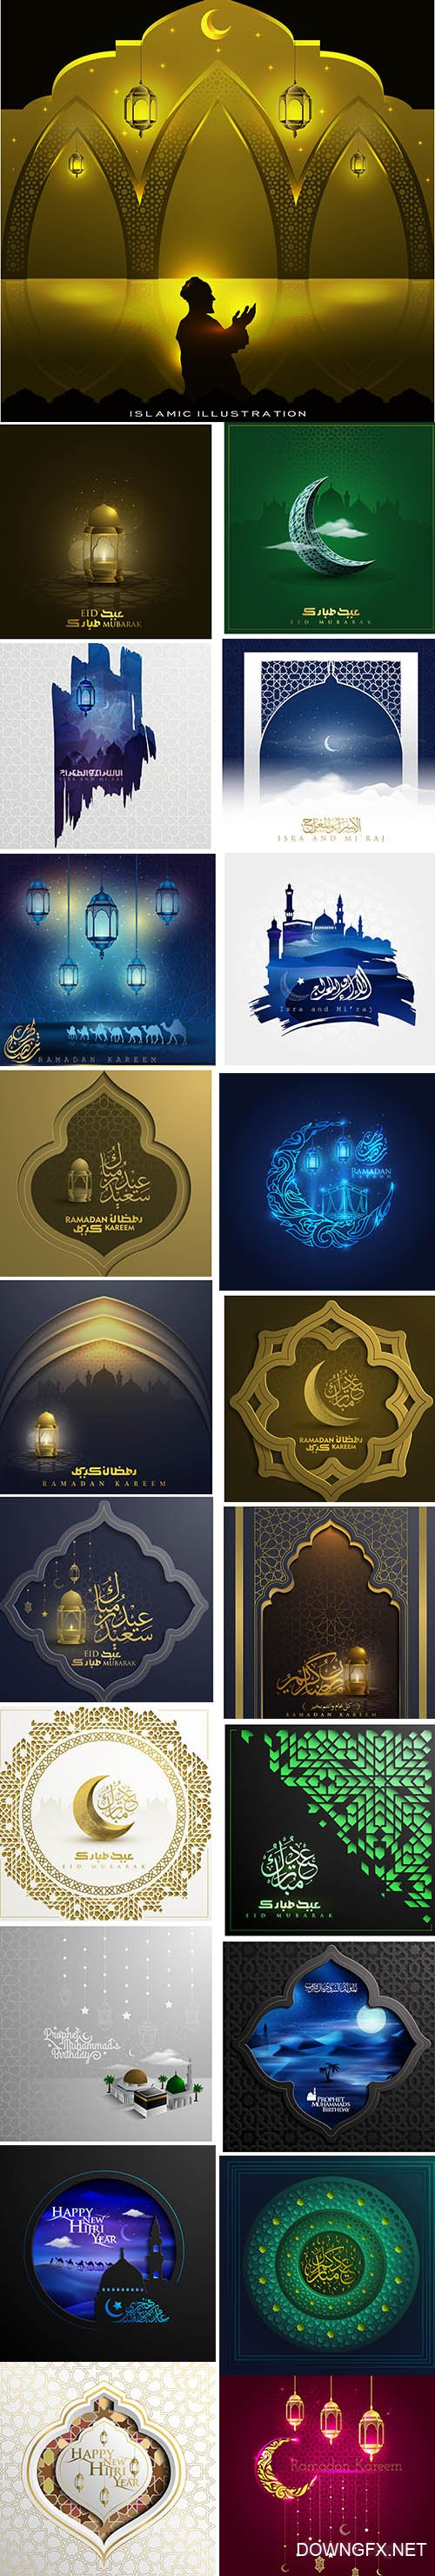 Greeting Islamic Illustrations with Arabic Calligraphy